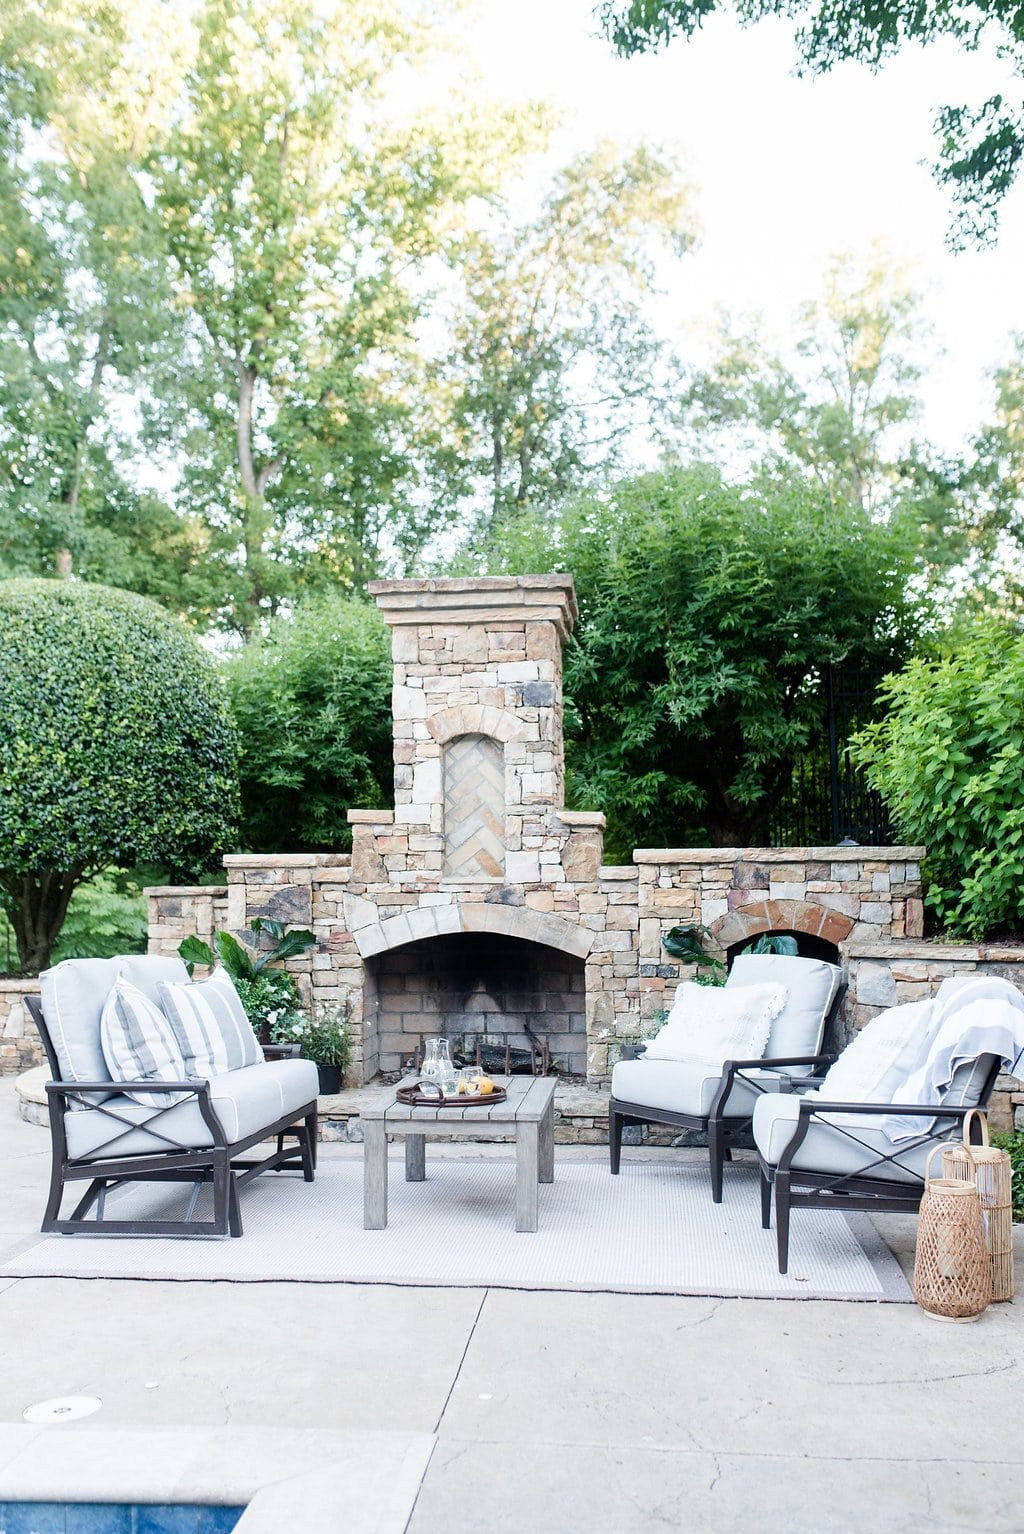 Outdoor Fireplace Furniture Rocker Glider Chairs And Love Seat By